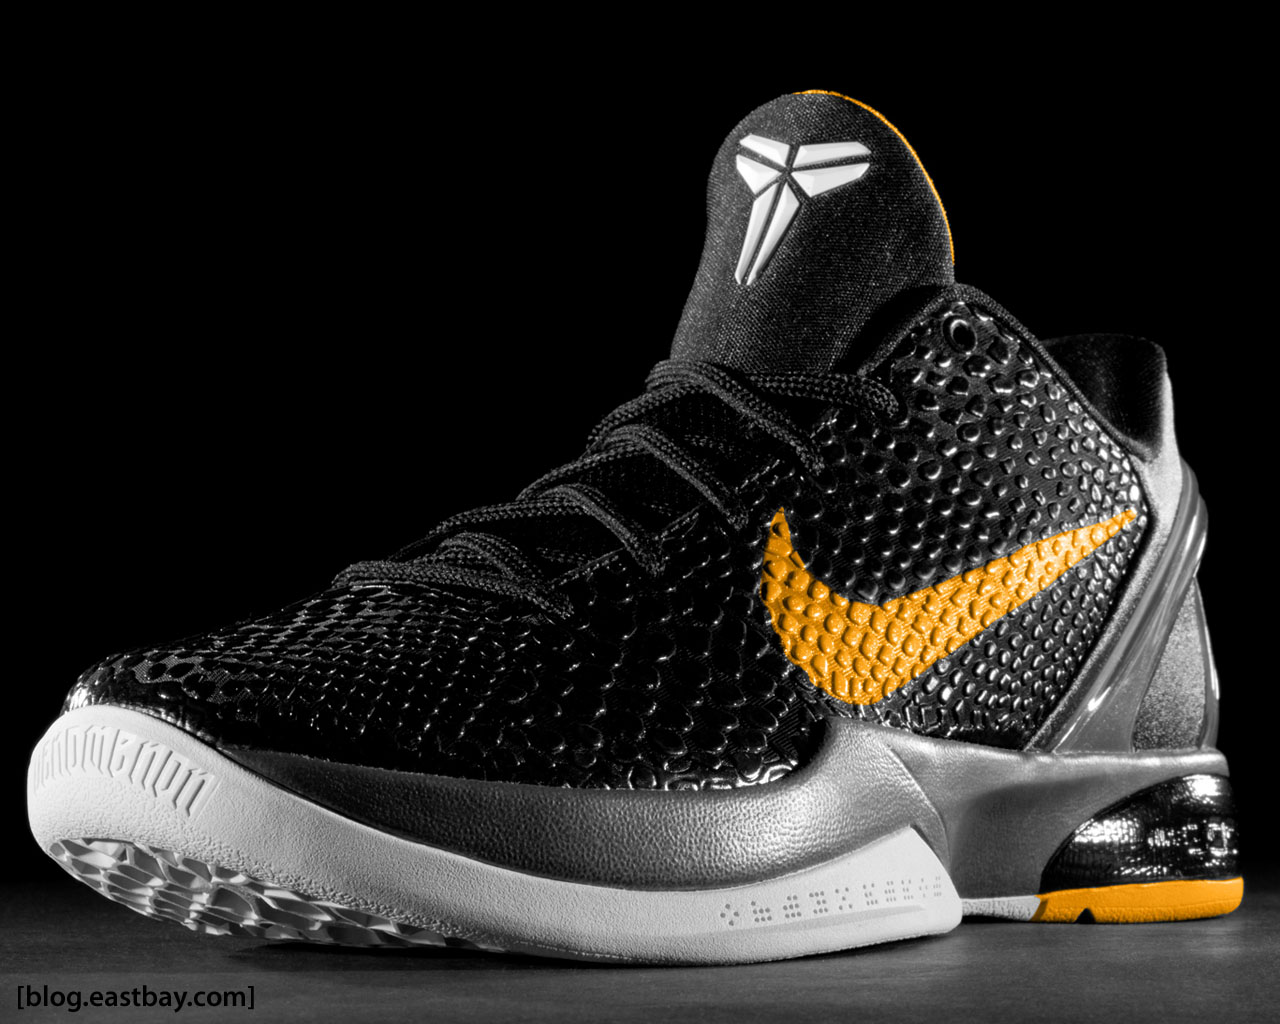 Look for these to be available at Eastbay at the end of December 1280x1024